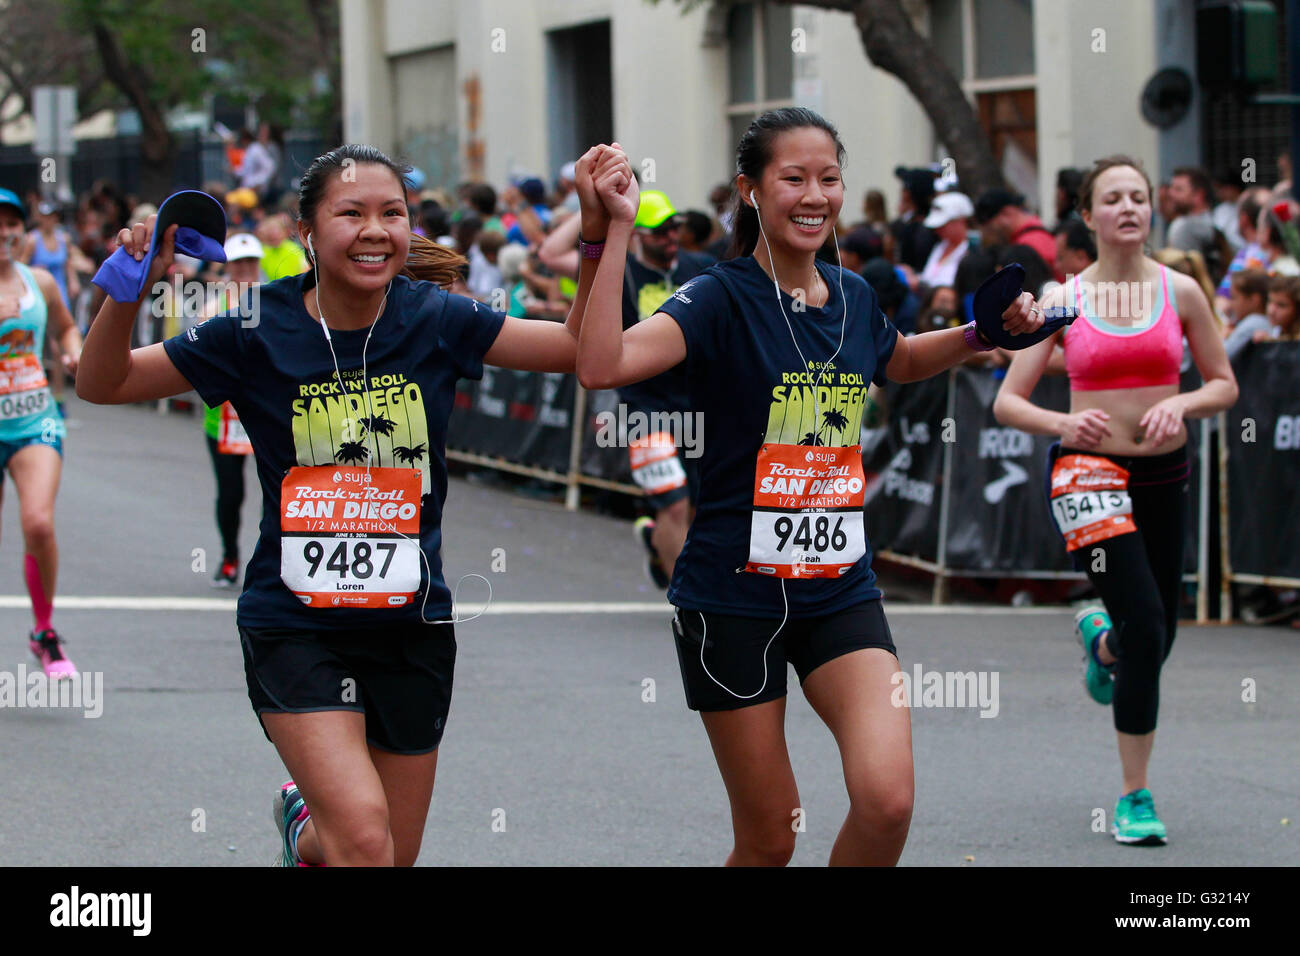 San Diego, California, USA. 5th June, 2016. SAN DIEGO CA, USA -- JUNE 2, 2016: .With the finish line in sight runners - Stock Image